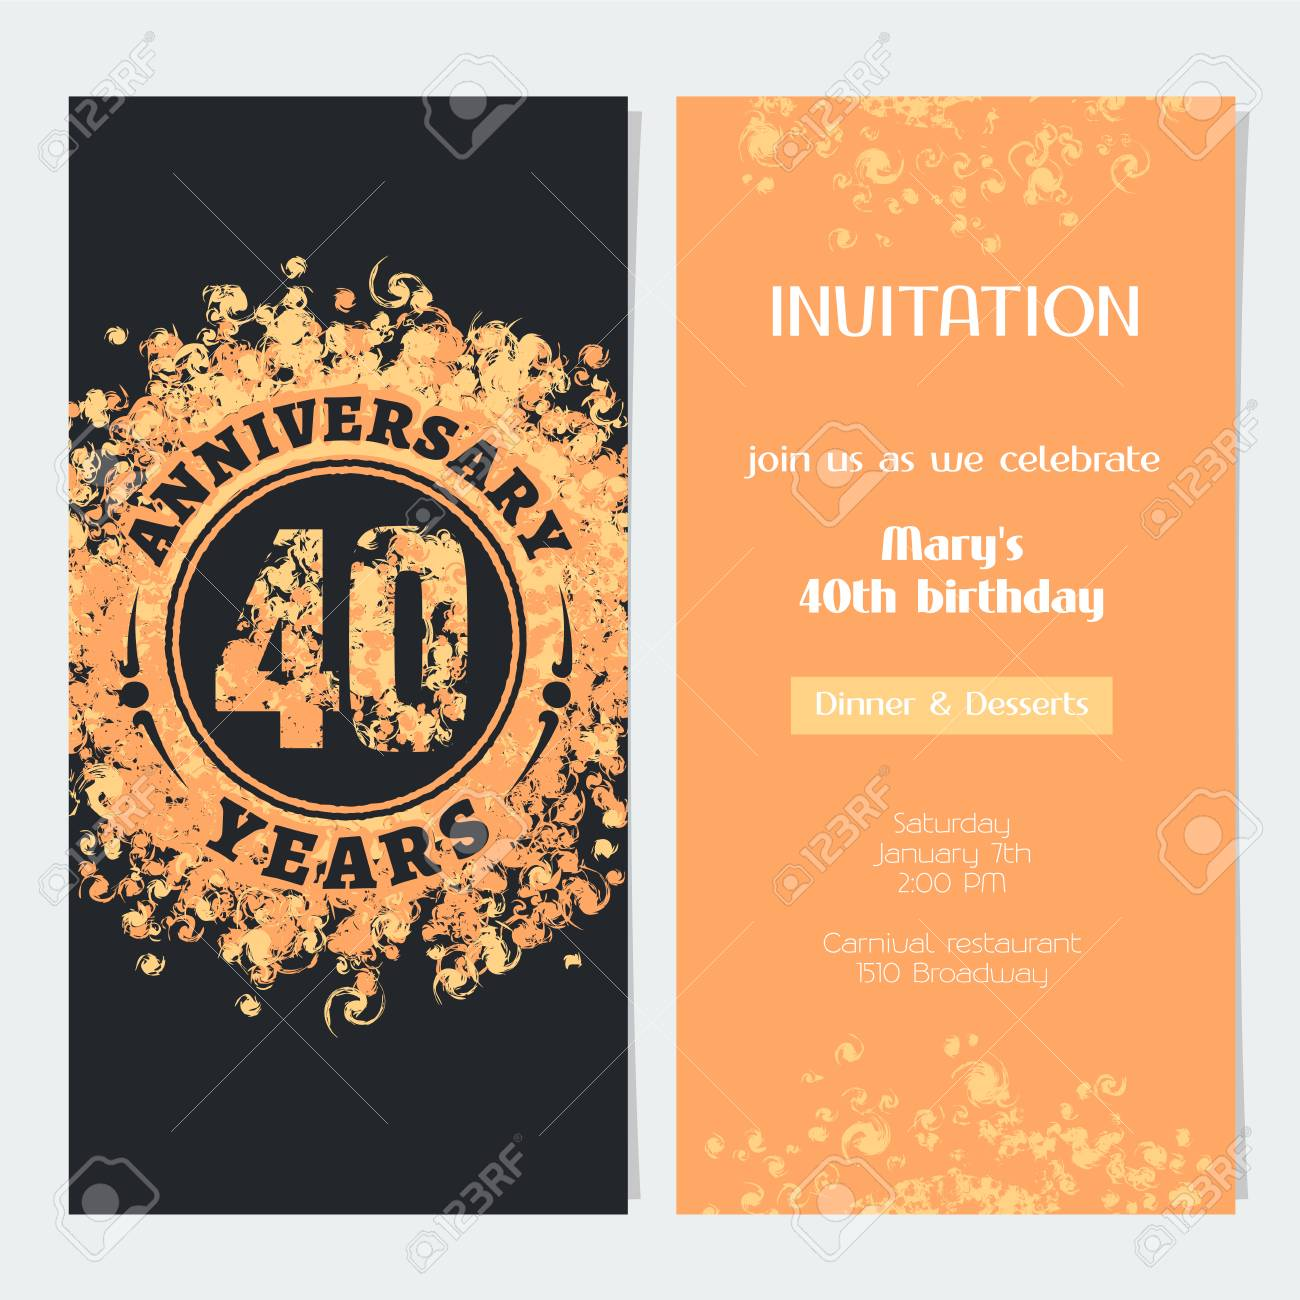 Invitation Anniversaire De 40 Ans A L Illustration Vectorielle De